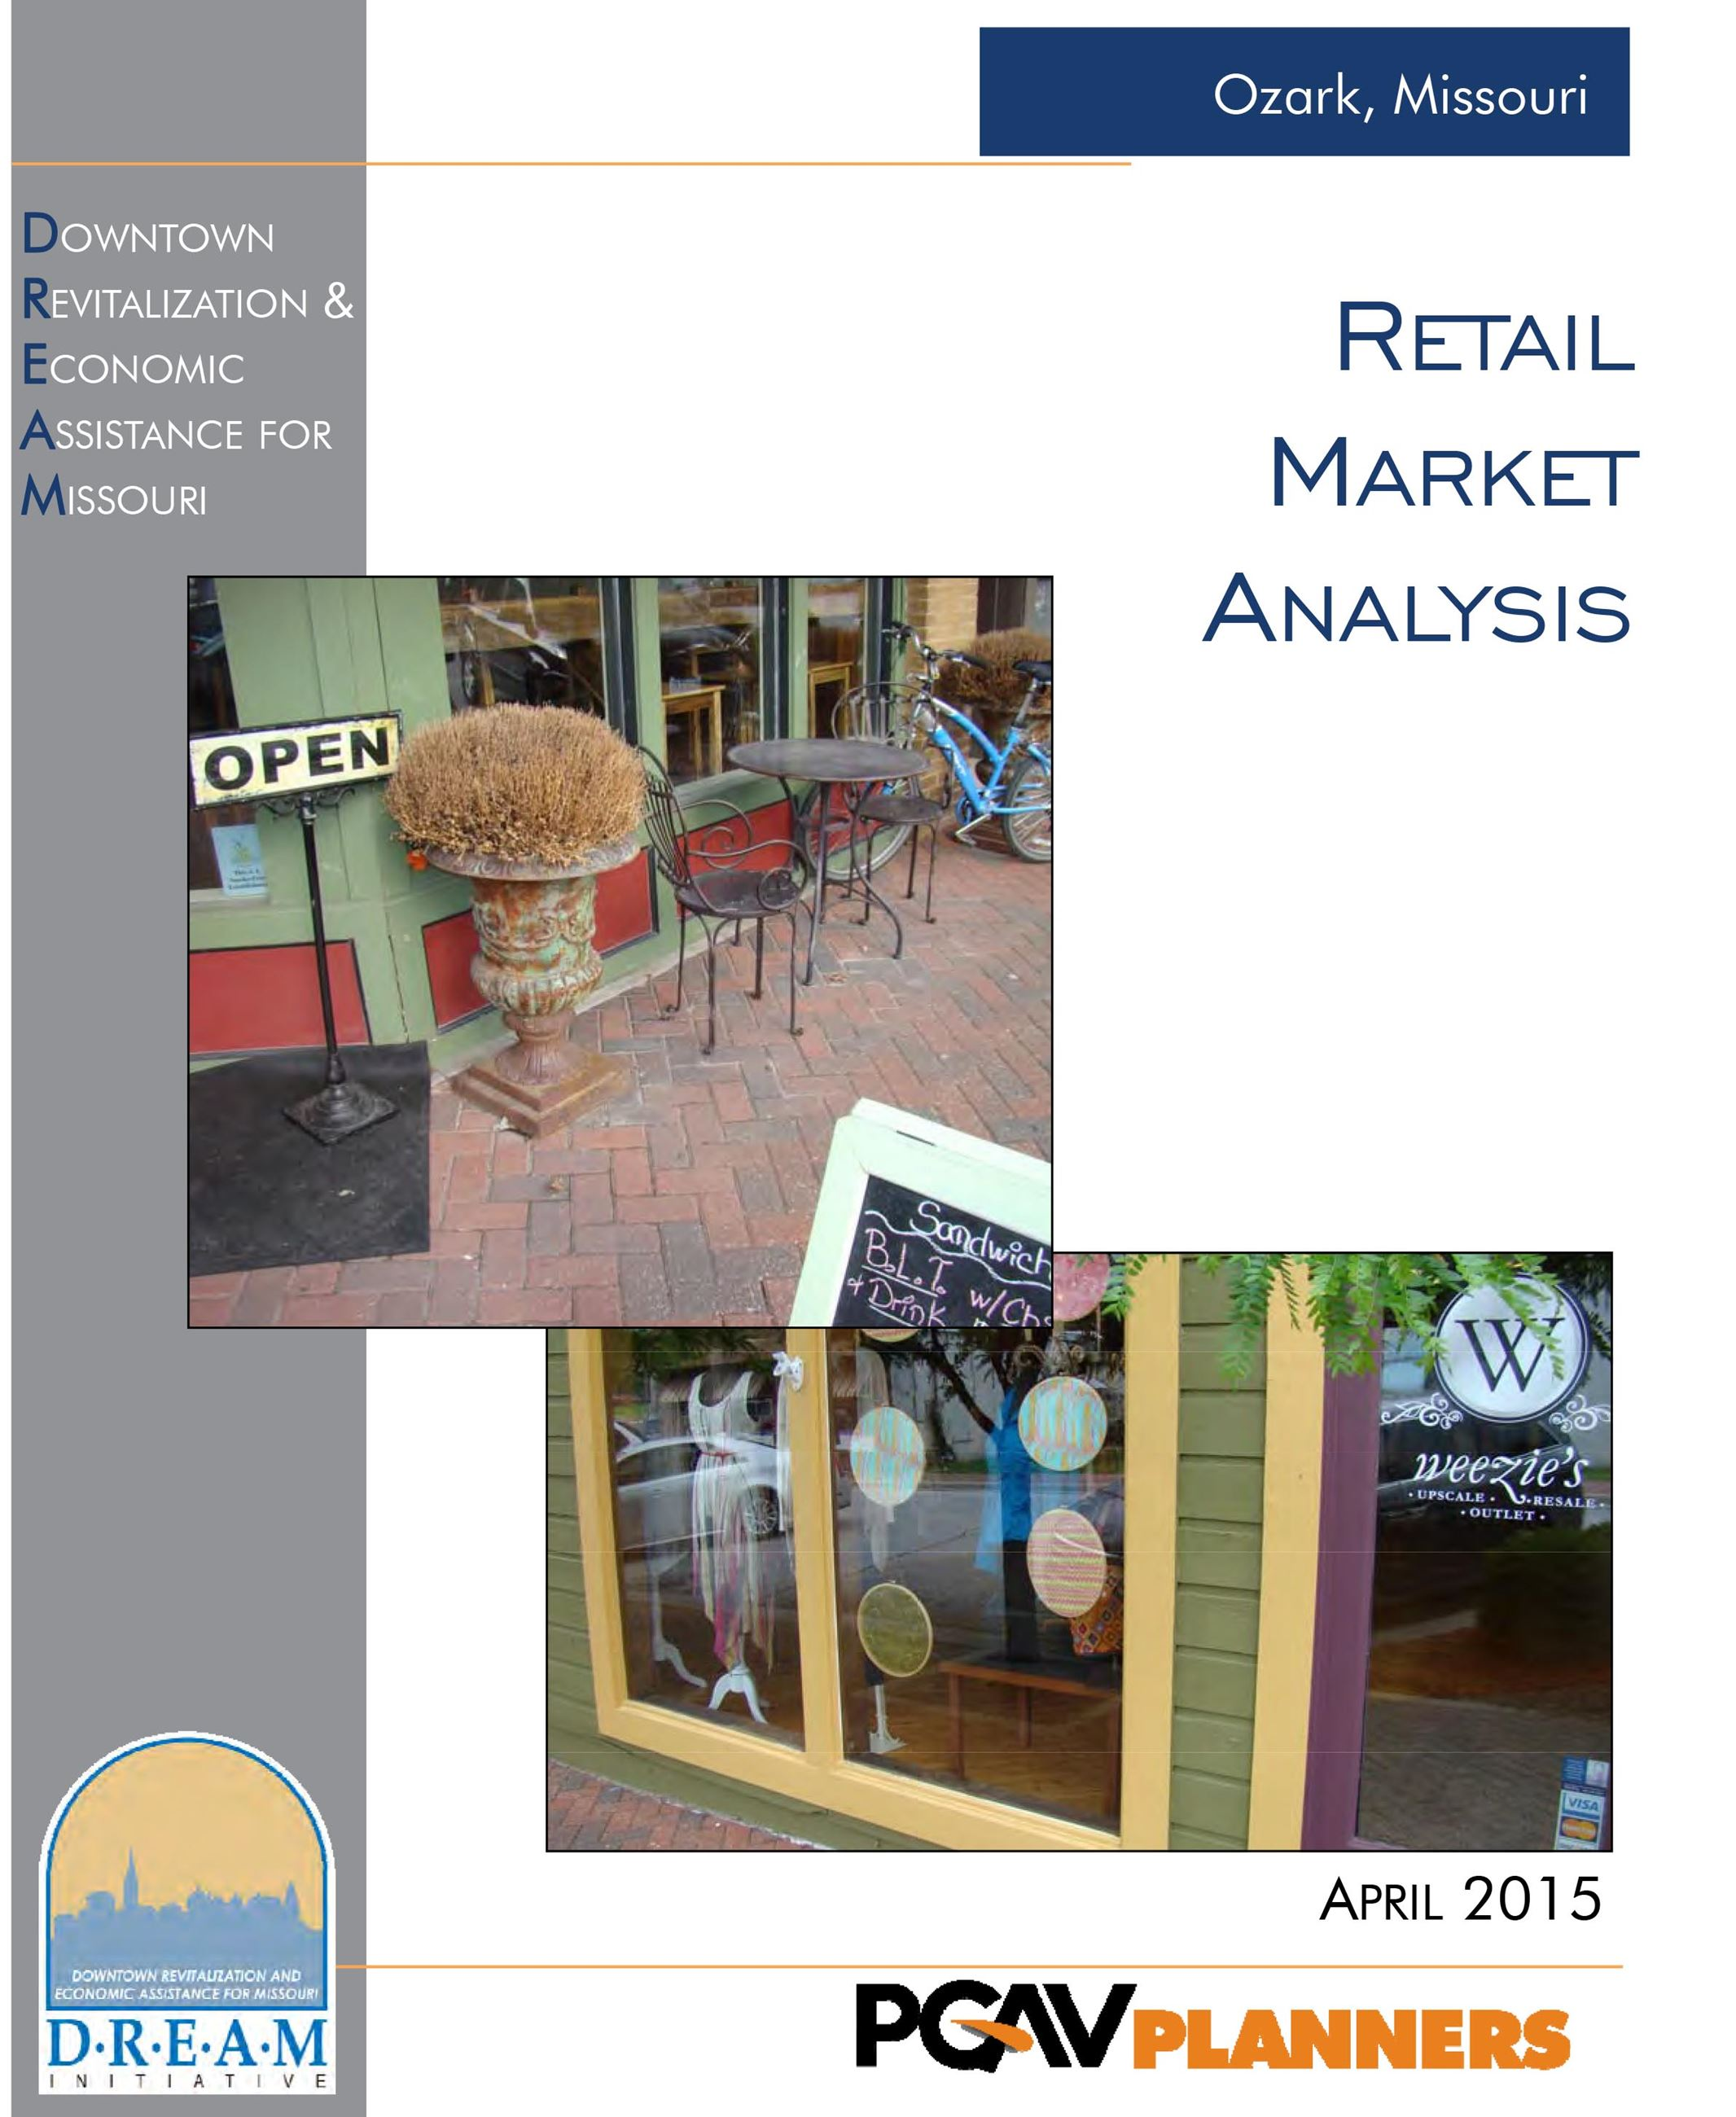 2015 Ozark Retail Market Analysis reduced-1